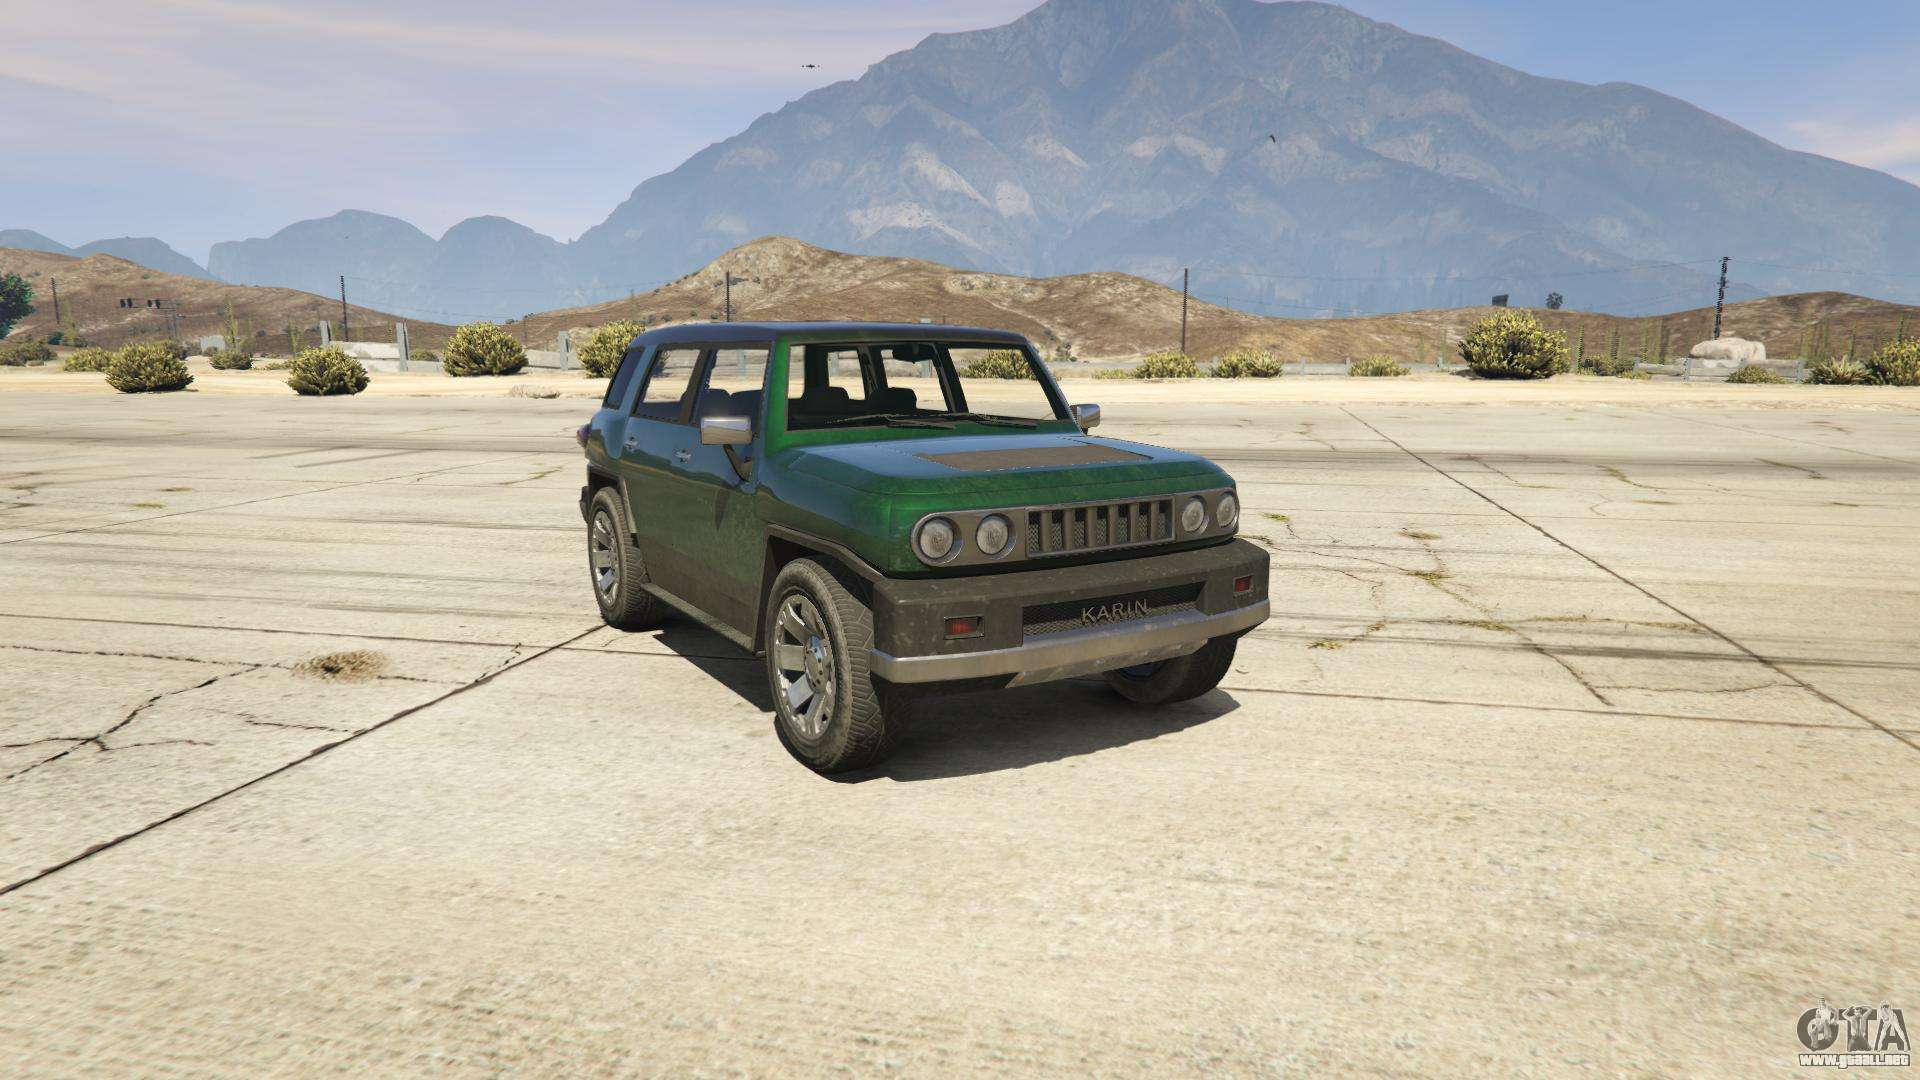 GTA 5 Karin BeeJay XL - vista frontal